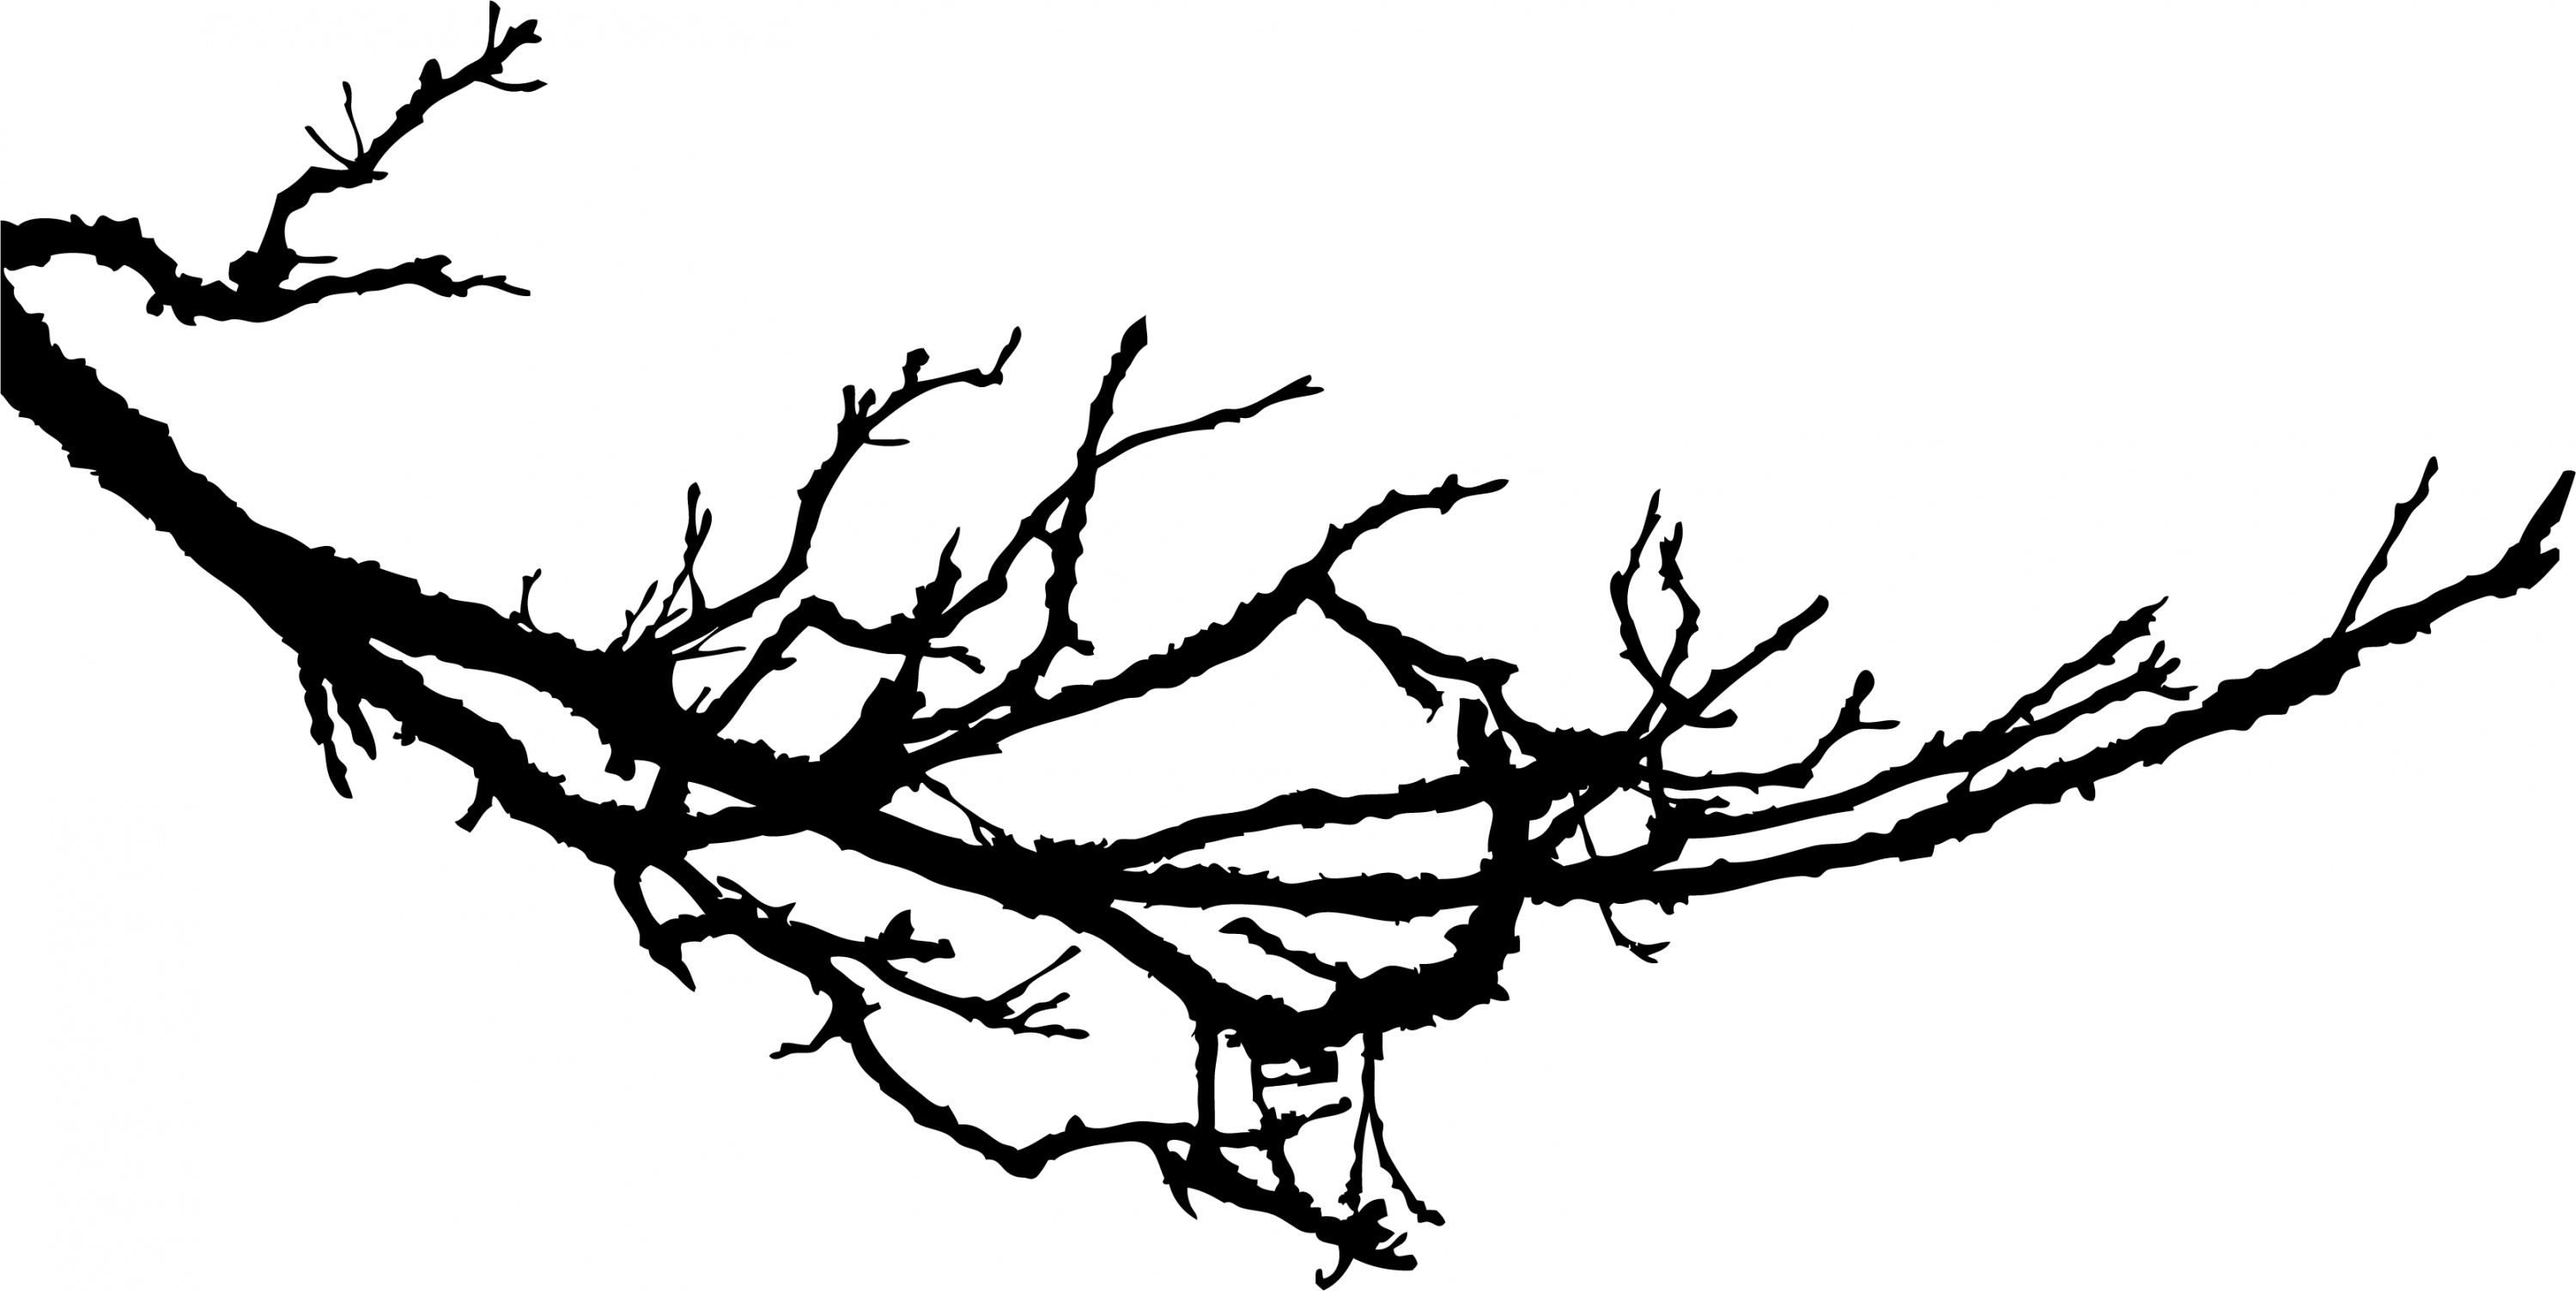 3000x1504 Branch clipart black and white